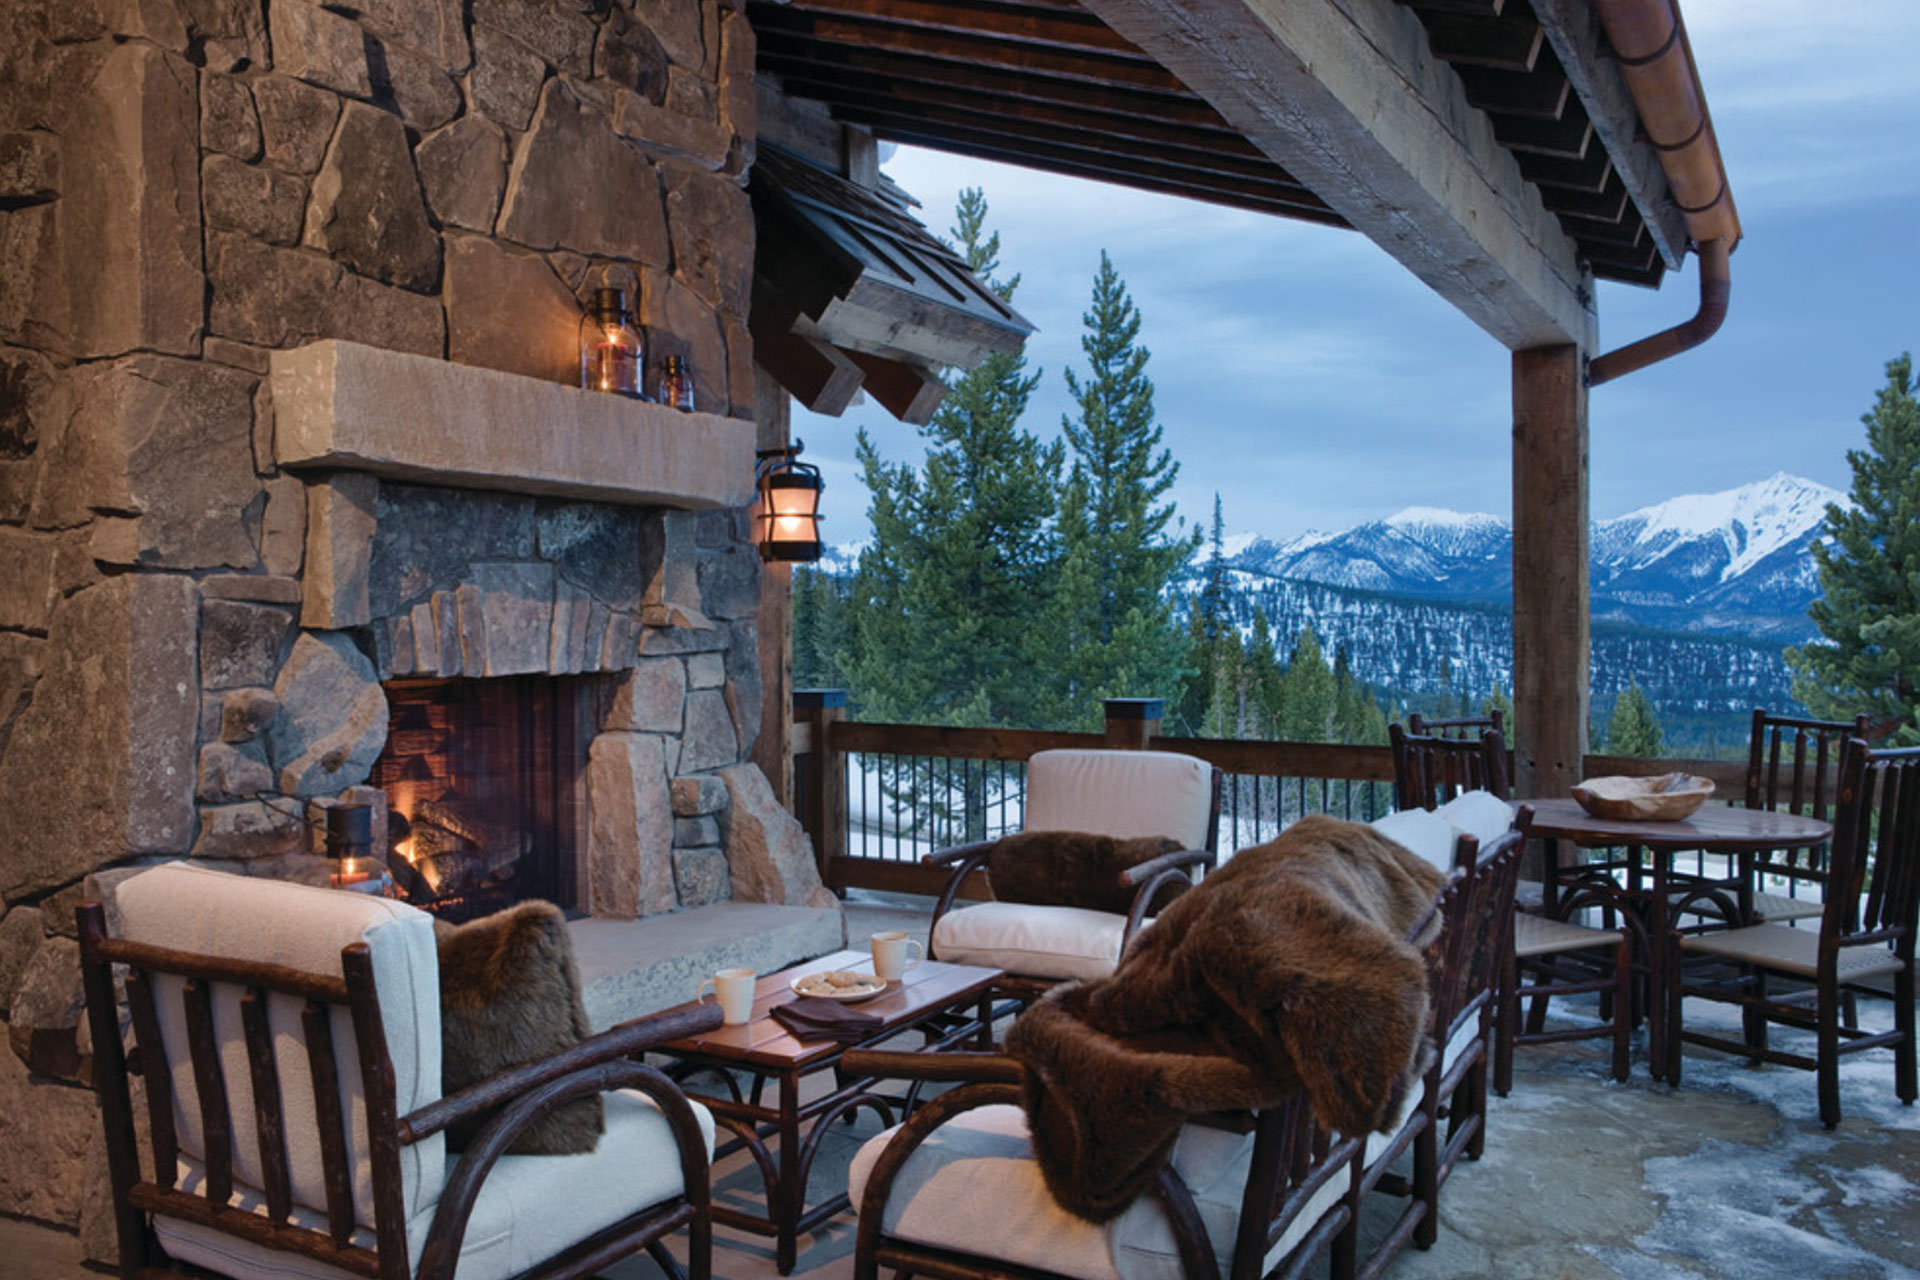 Five Ways to Extend Your Outdoor Living Space Season on Outdoor Living Ltd id=67786